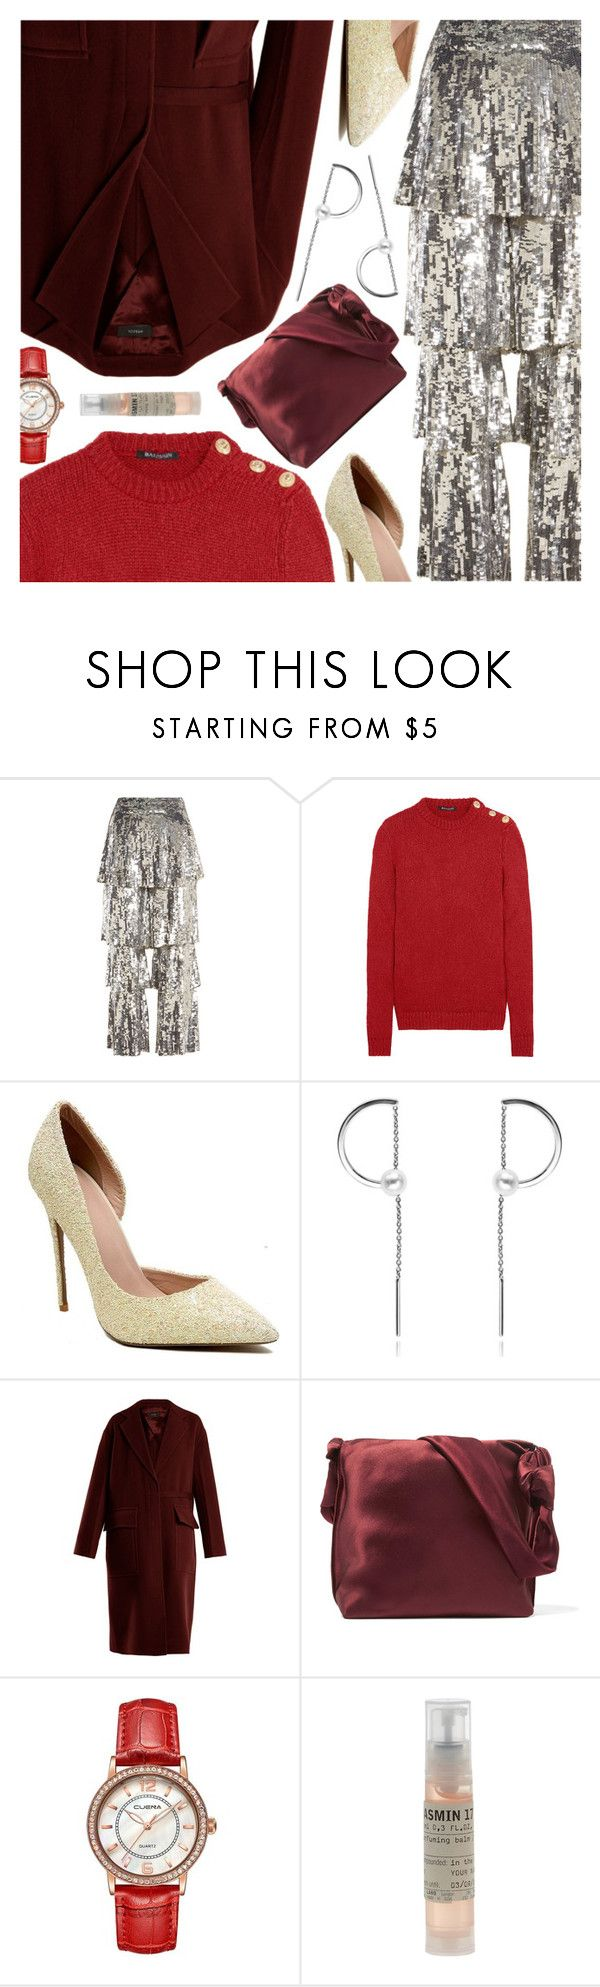 """""""Holiday Party Ready FT. Rosegal"""" by amberelb ❤ liked on Polyvore featuring Osman, Balmain, Joseph, The Row and Le Labo"""